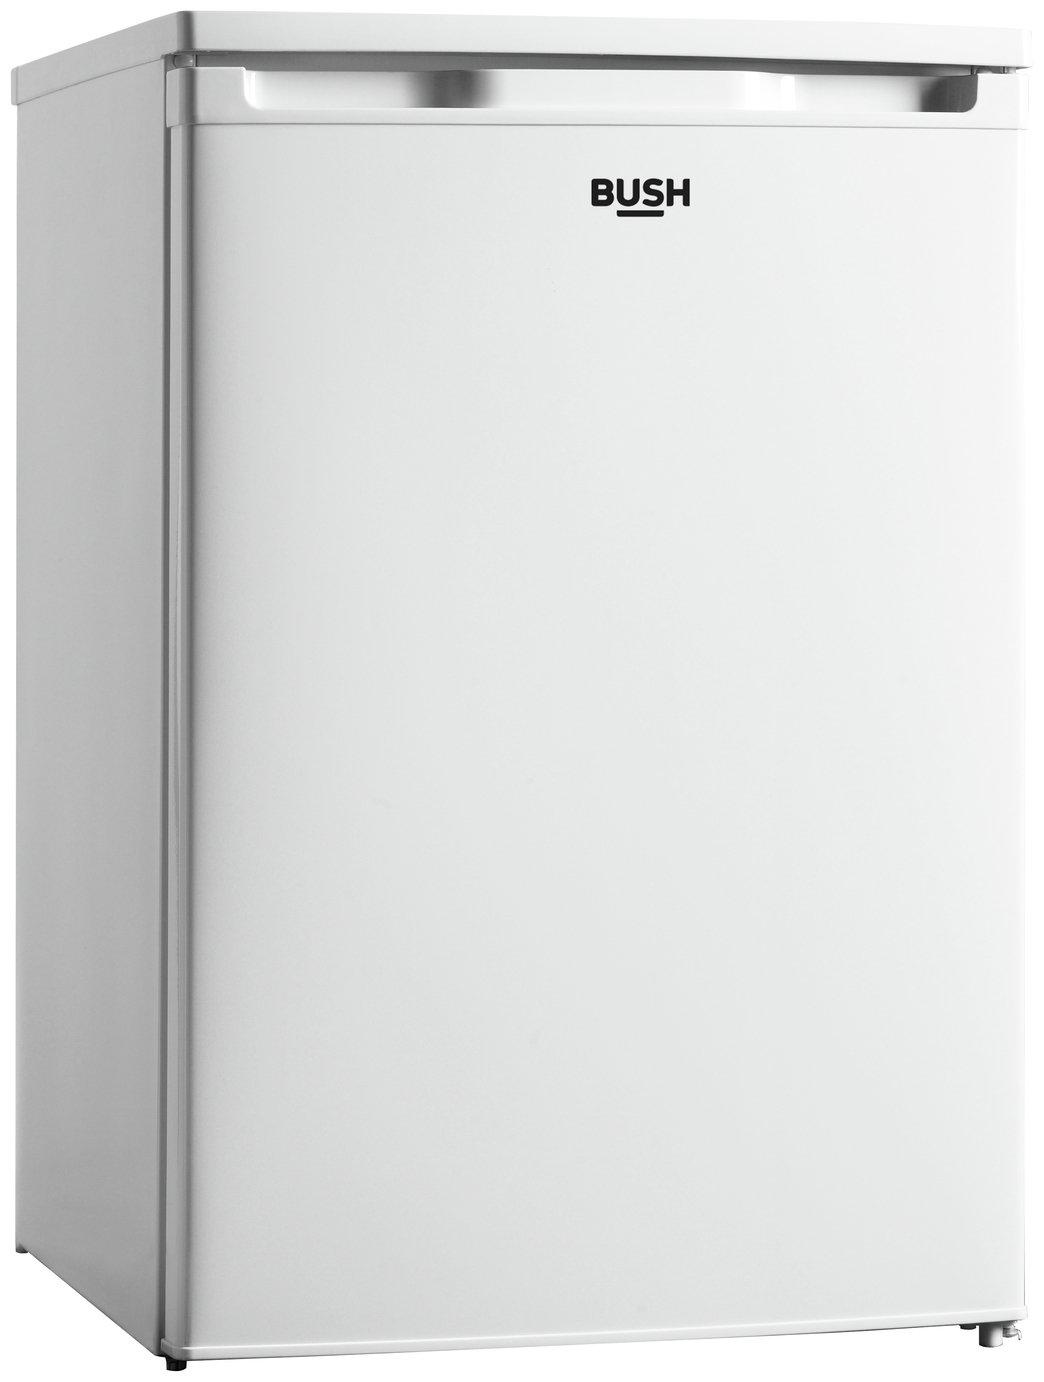 Image of Bush M5585UCF Under Counter Fridge - White